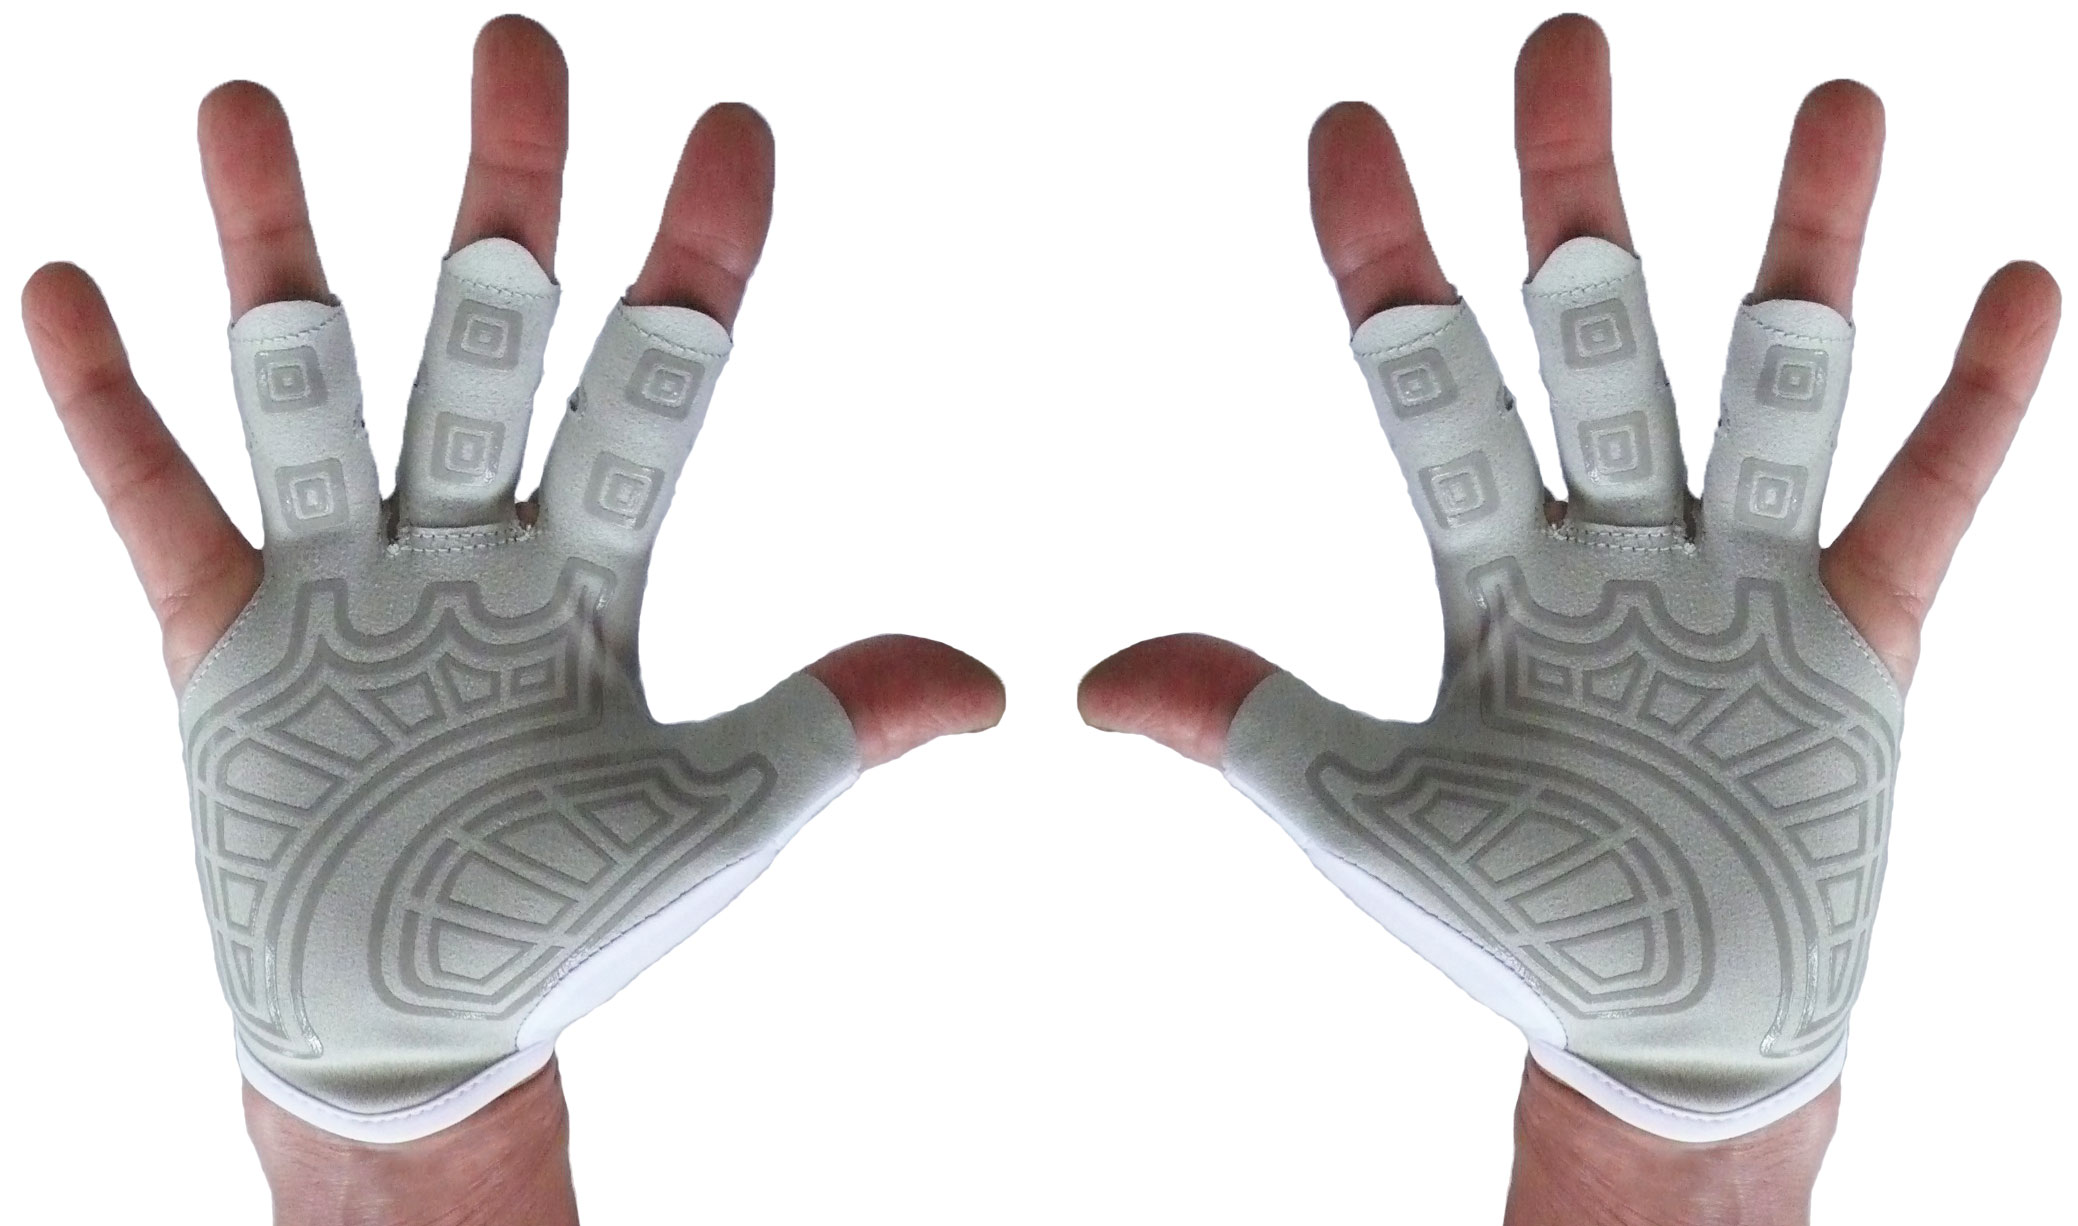 sculling rowing glove pair